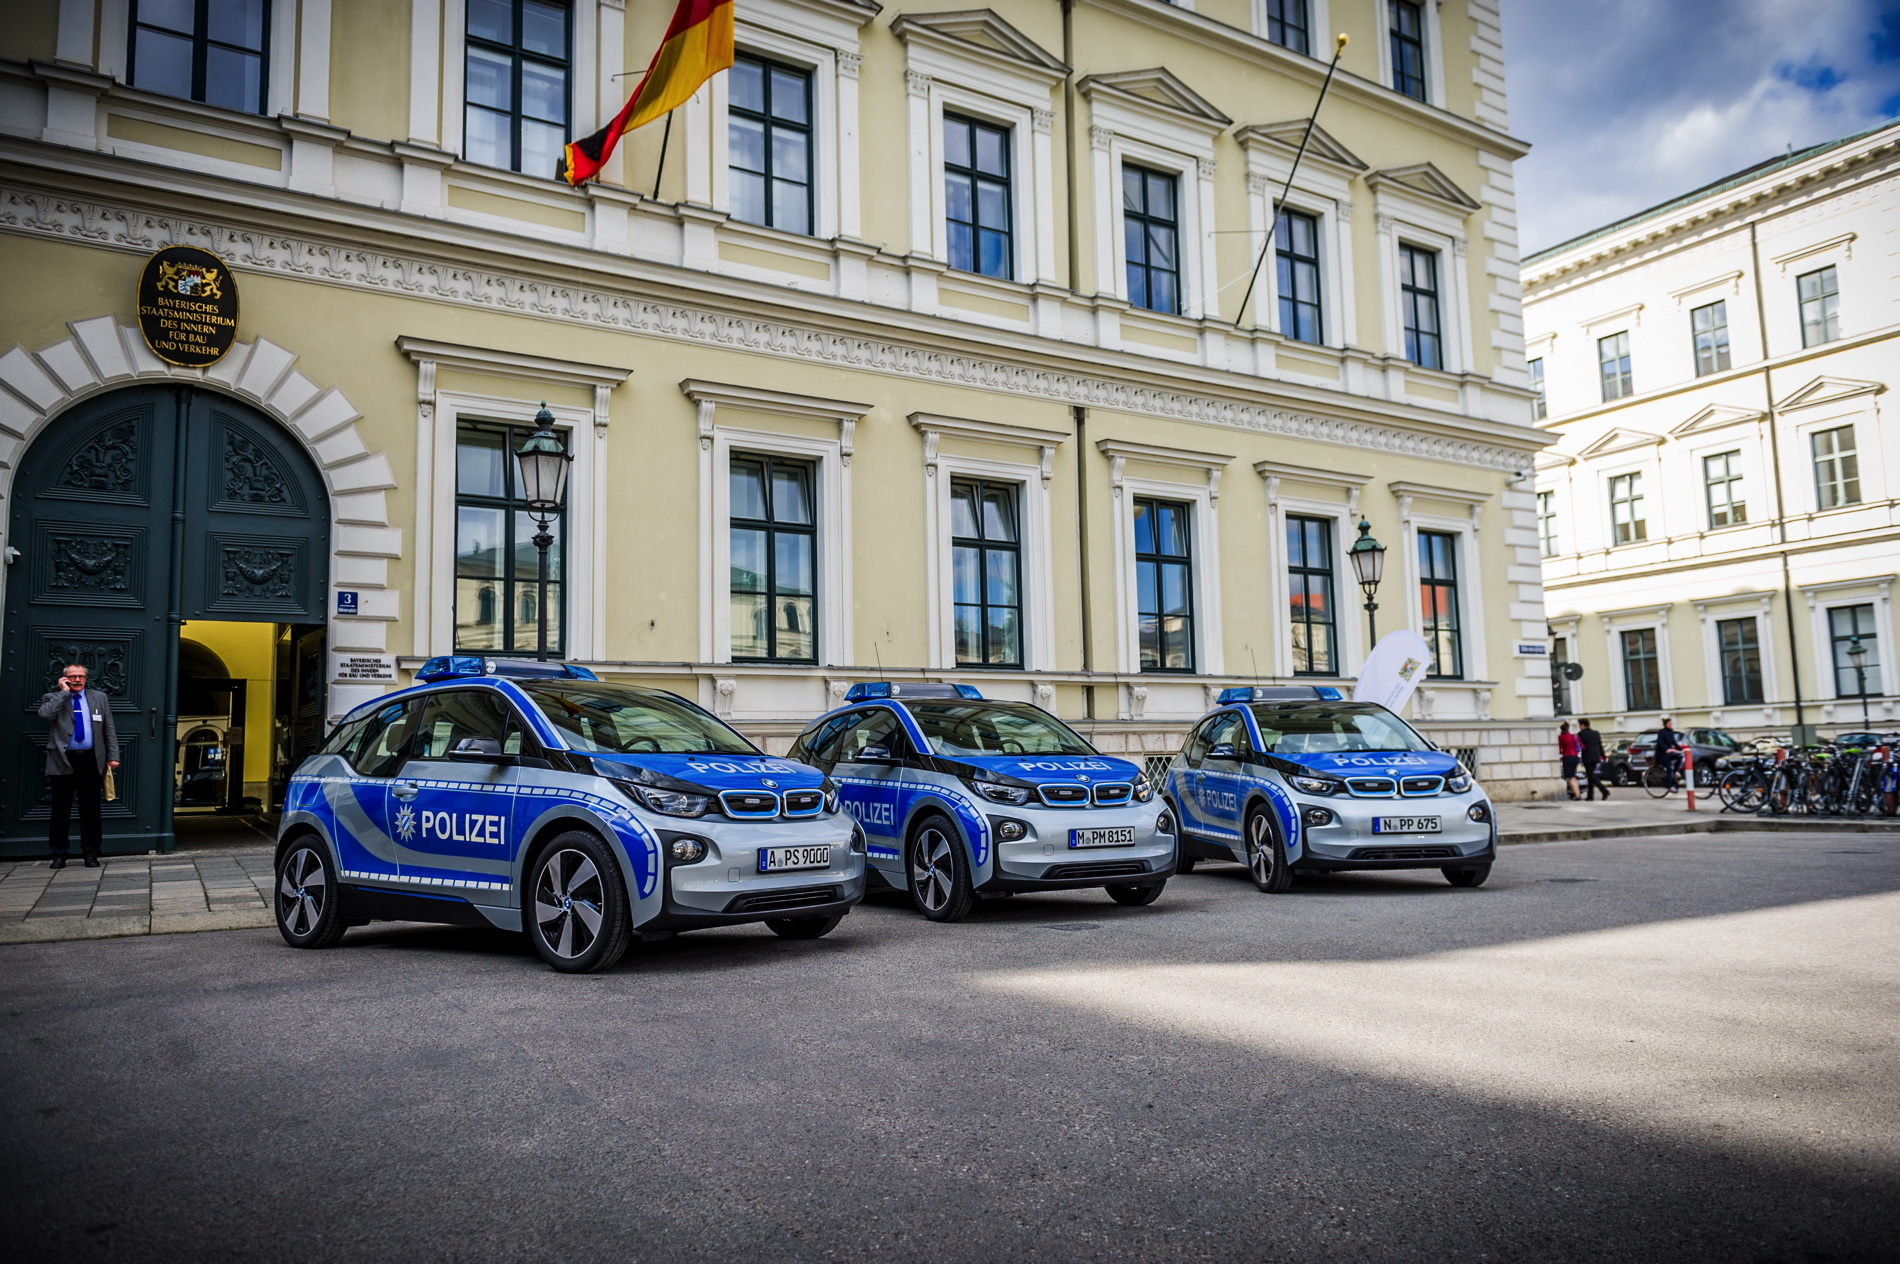 Munich police fleets gets BMW i3 cars